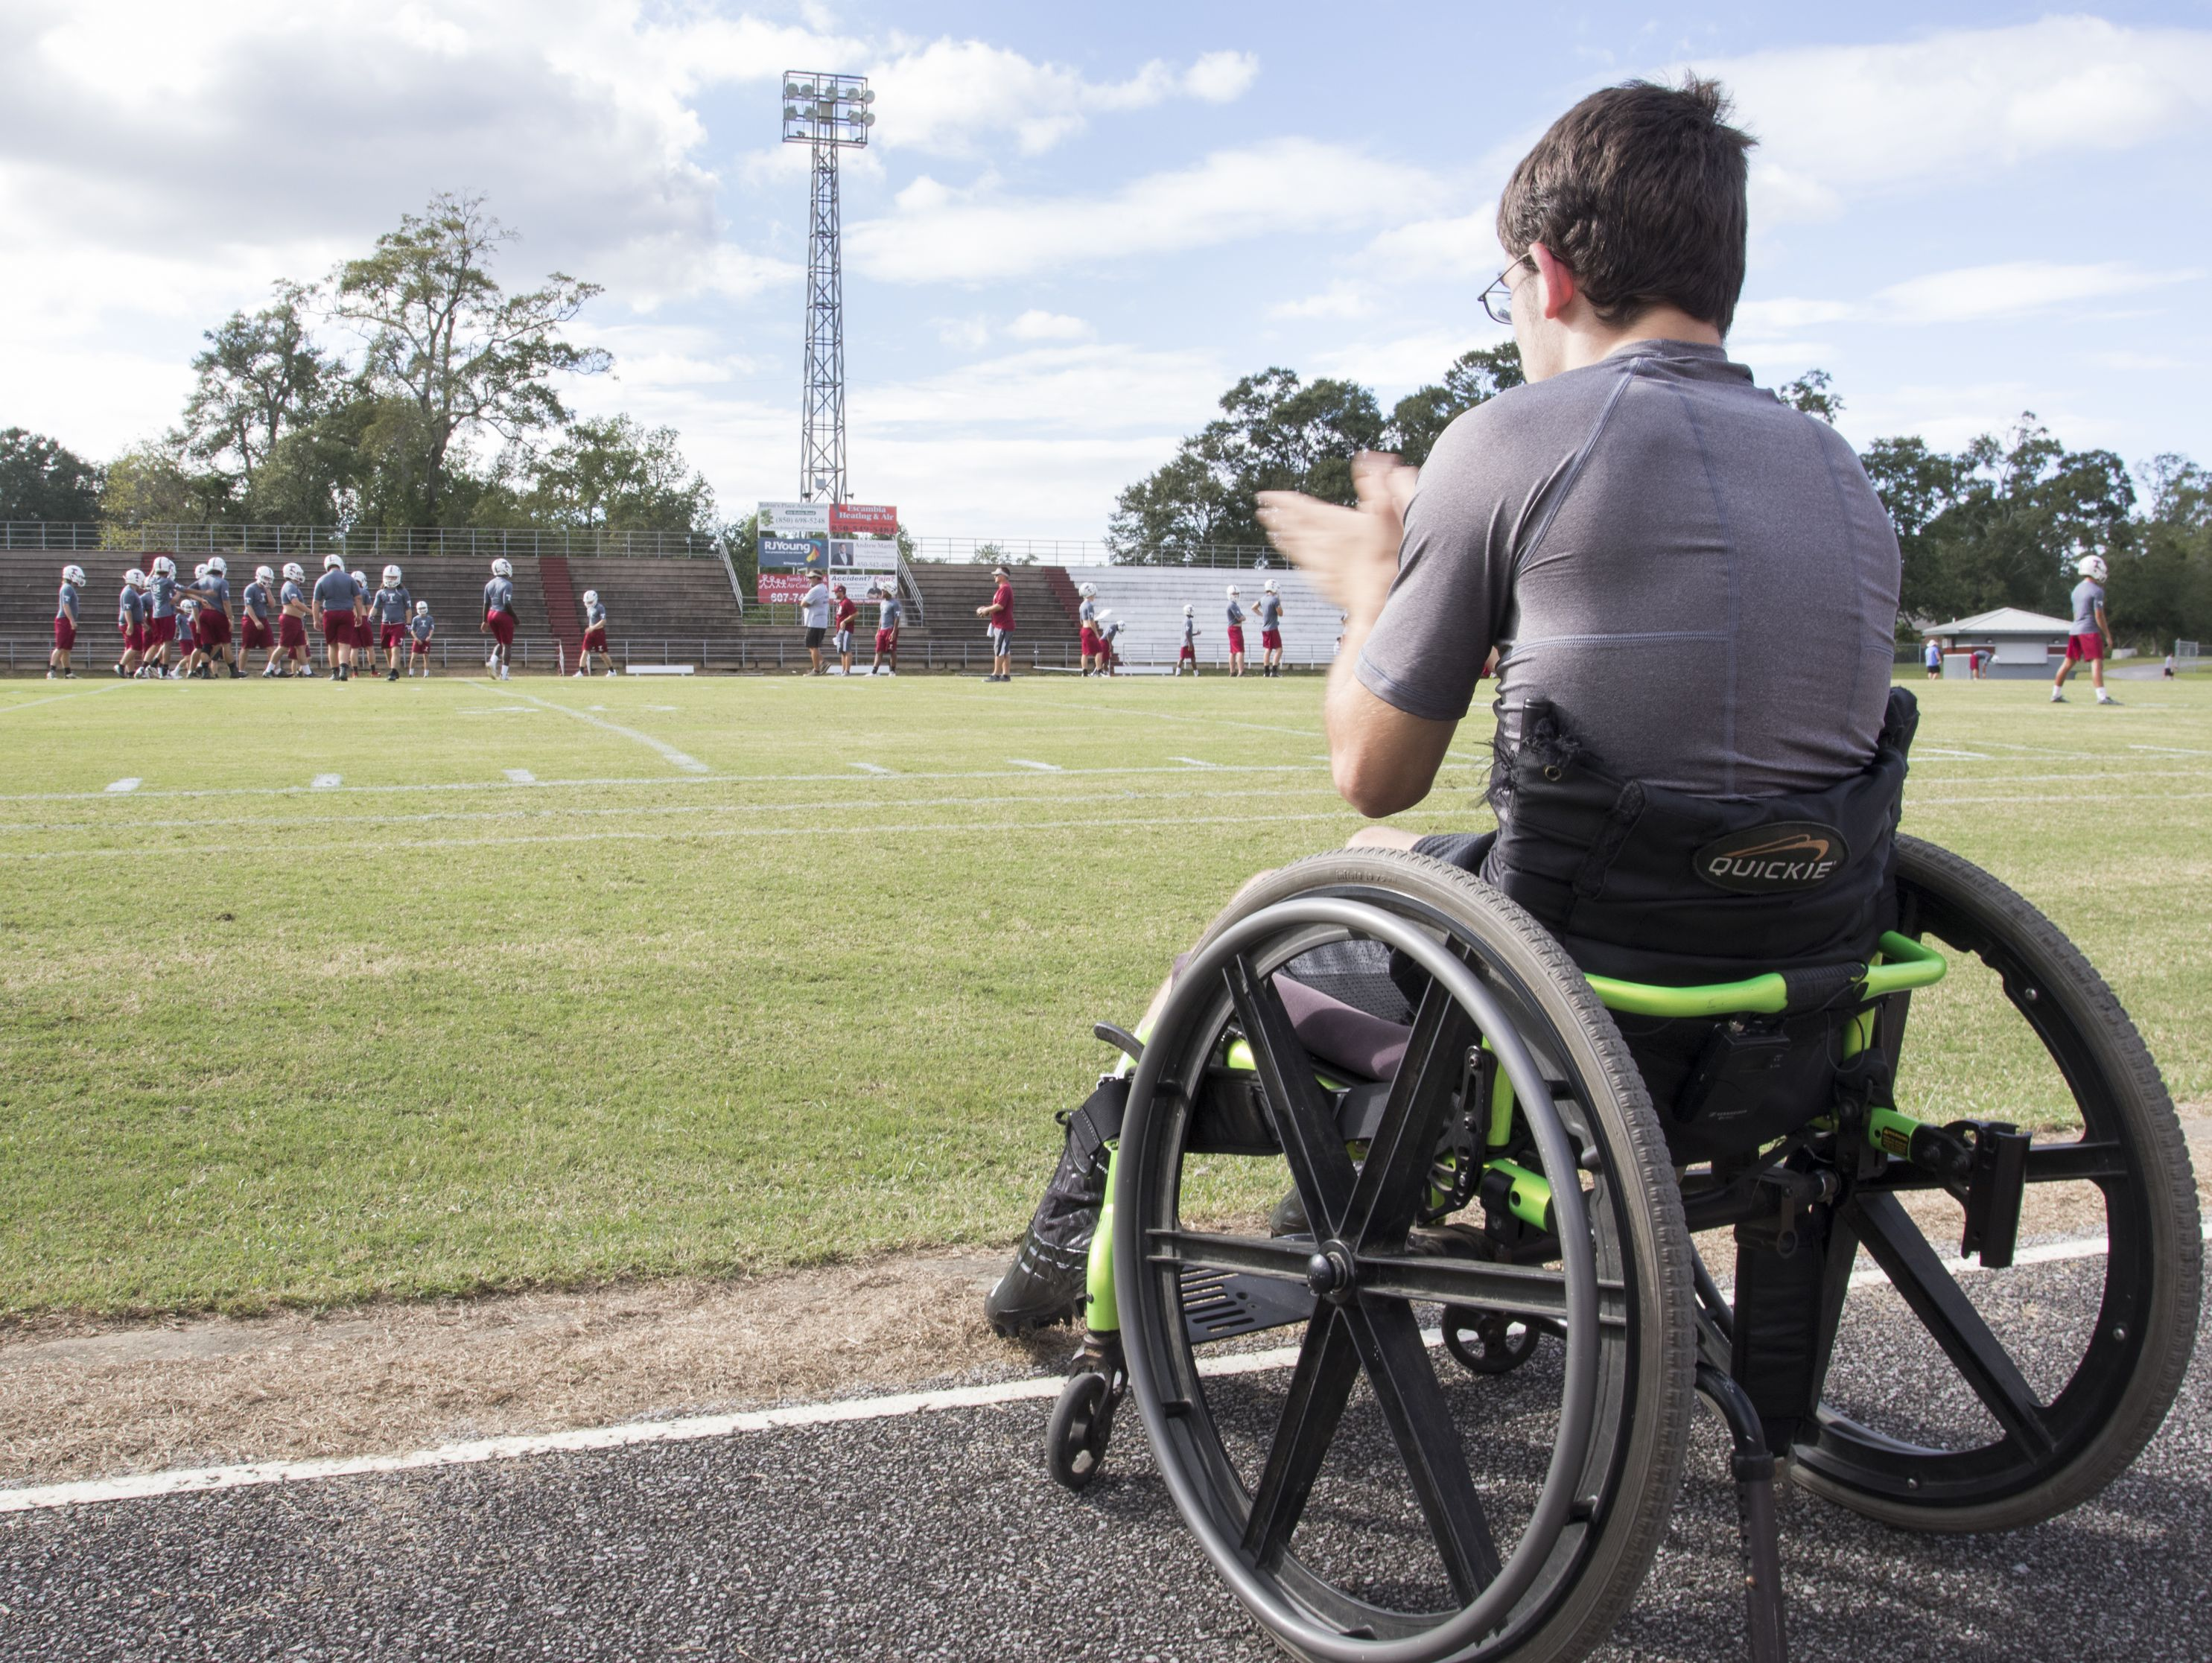 Markus Baxley, a student with cerebral palsy, cheers on his teammates during football practice at Tate High School in Pensacola on Thursday, October 6, 2016. Baxley will fulfill a lifelong dream when he participates in one play in the Friday night game against Pace High School.